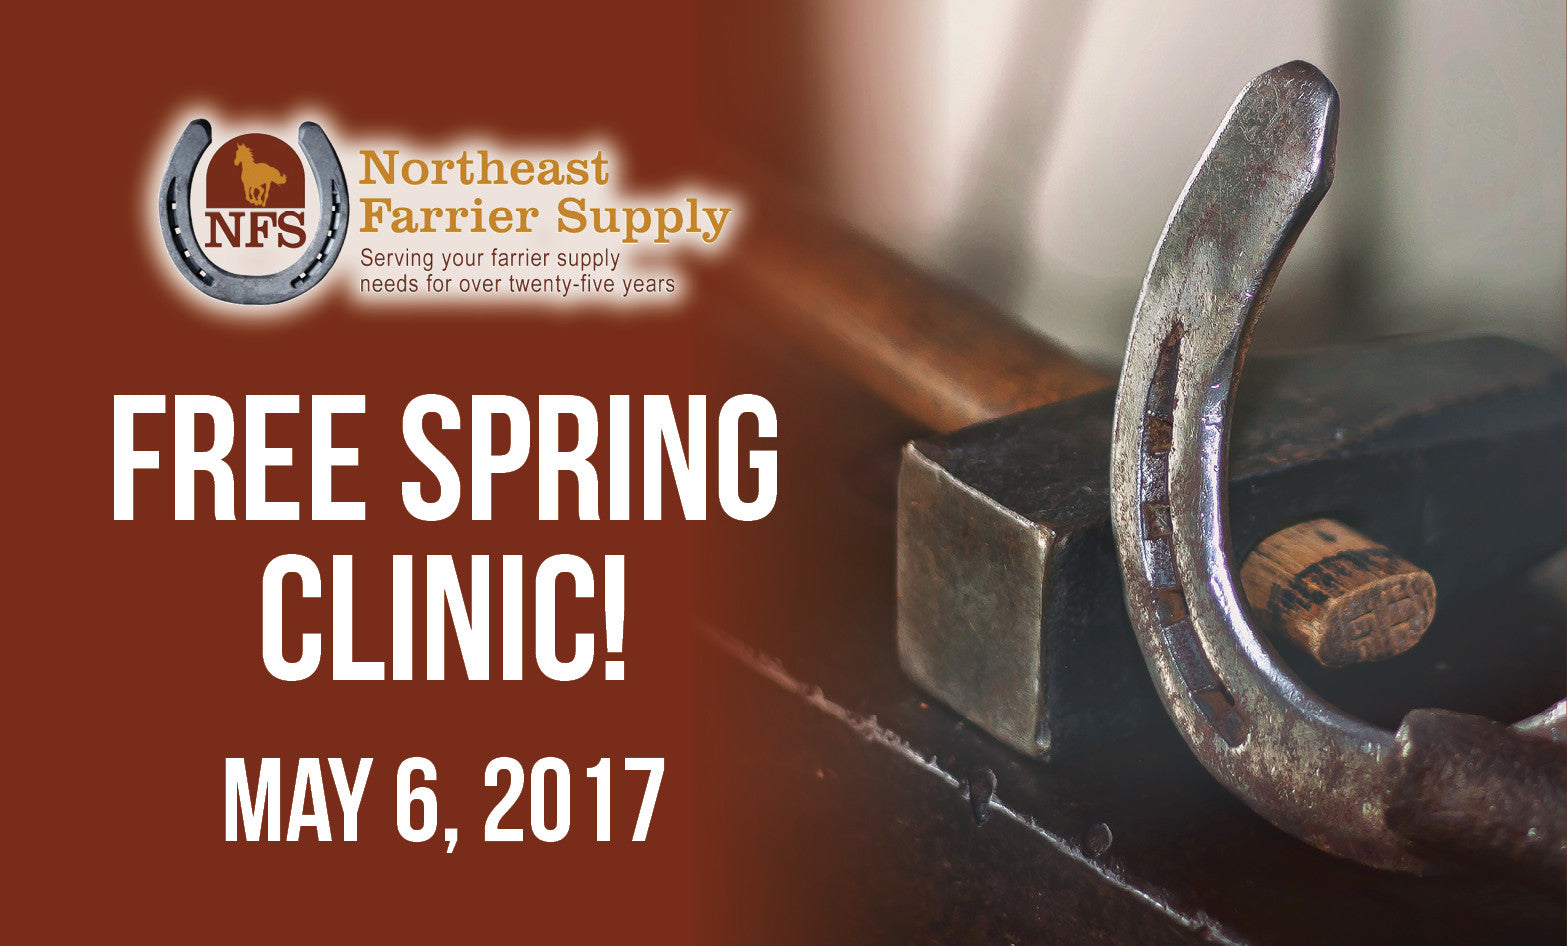 Northeast Farrier Supply